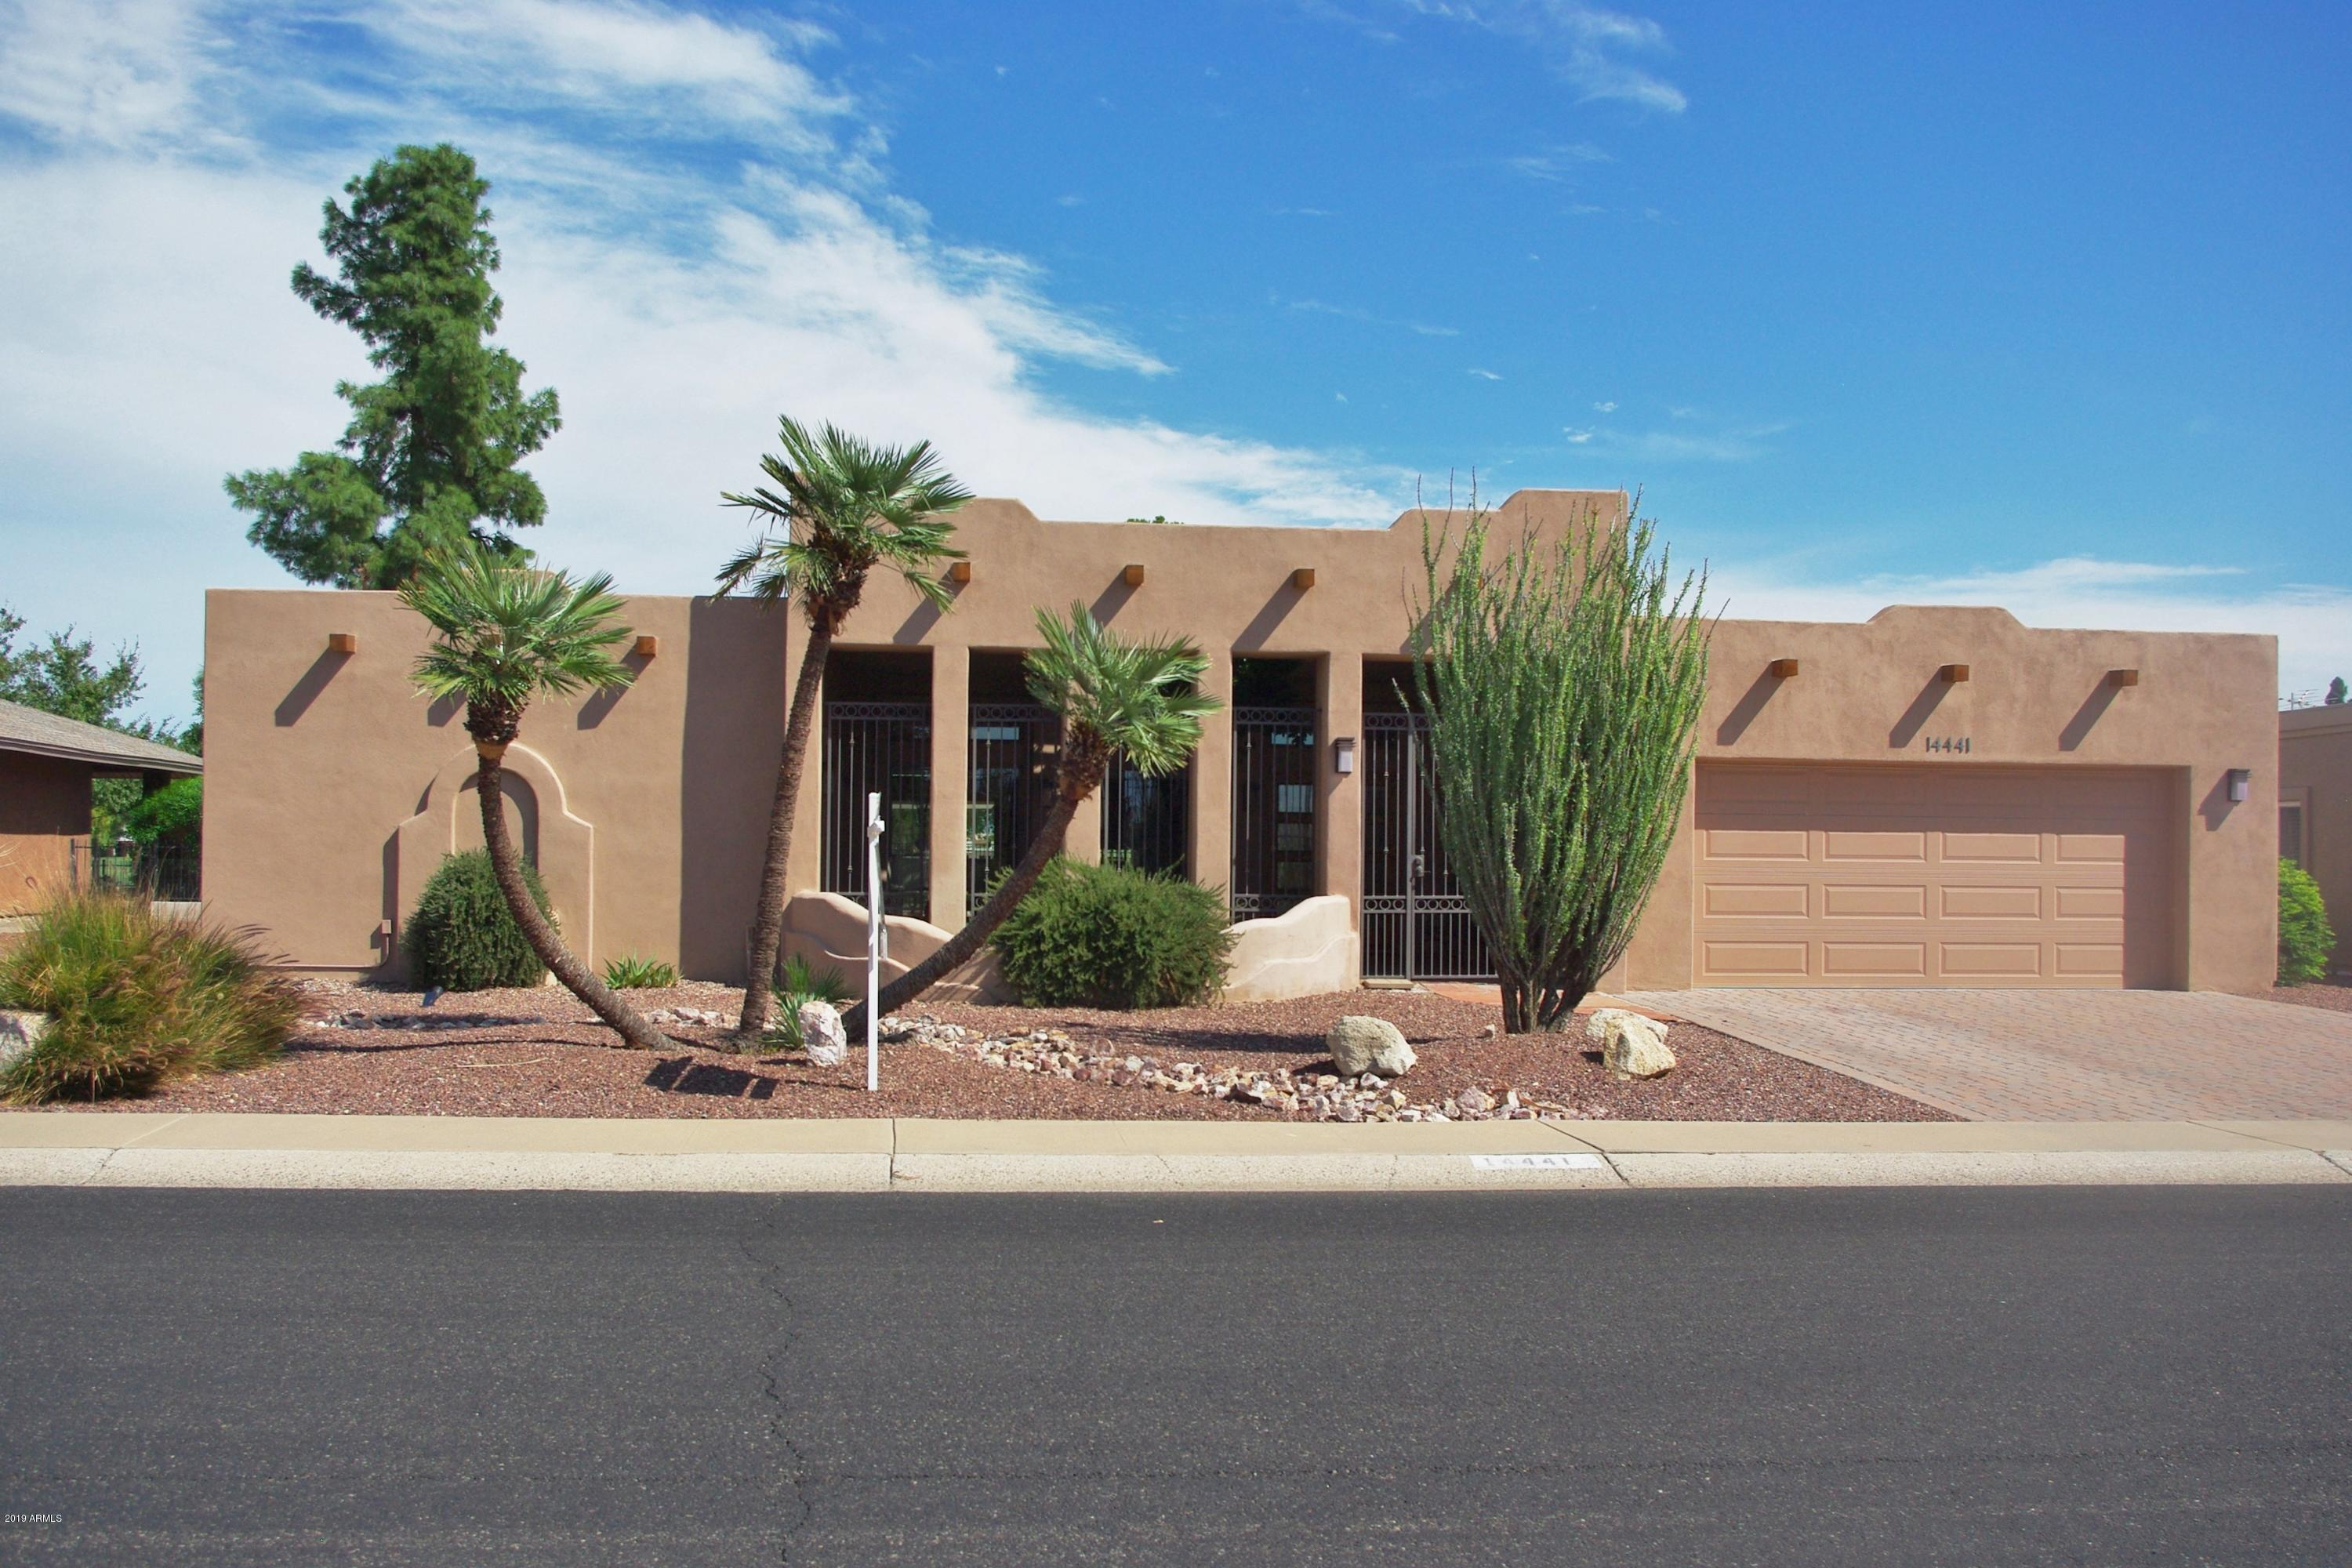 Photo of 14441 N CAMEO Drive, Sun City, AZ 85351